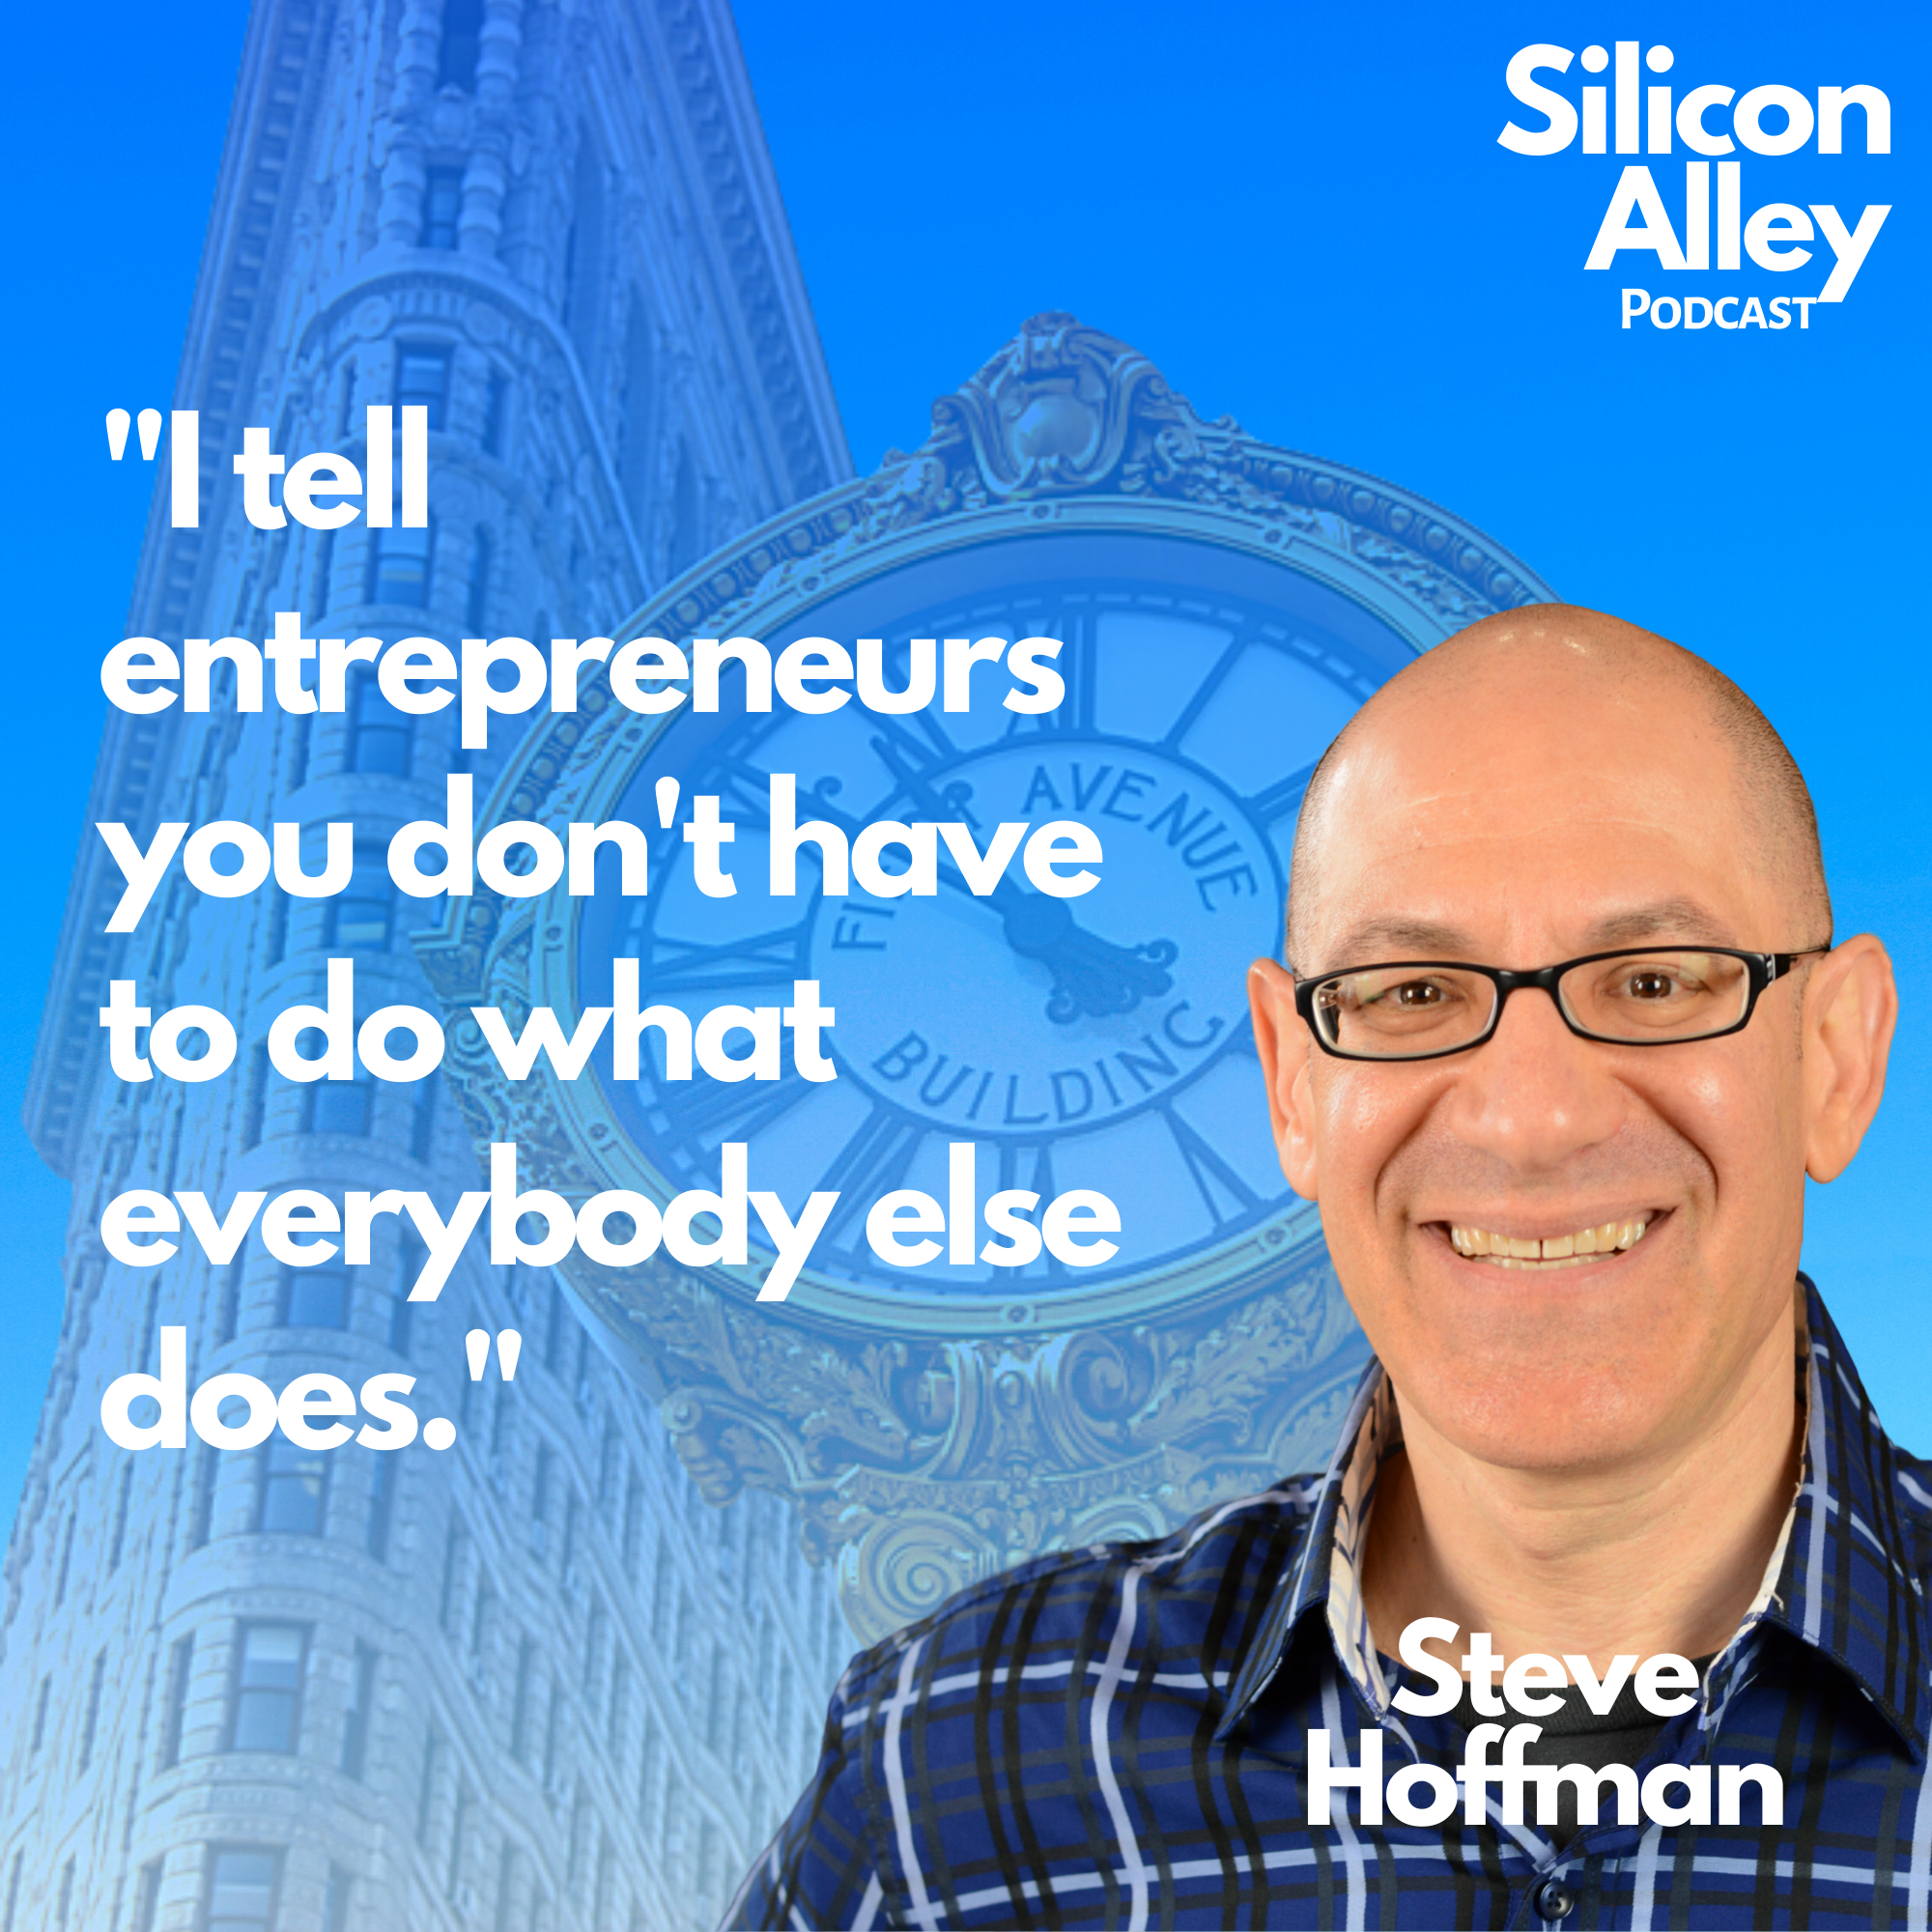 Sometimes following conventional wisdom is the wrong choice. Do what works for you and your business.   What unconventional approach have you taken?  #unconventional #entrepreneurship #startup #businessadvice #startuplife #angelinvesting #venturecapital #siliconalley #siliconvalley #incubator #accelorator #millionaire #unicorn #ipo #wisdom #blueocean #leanstartup #growth